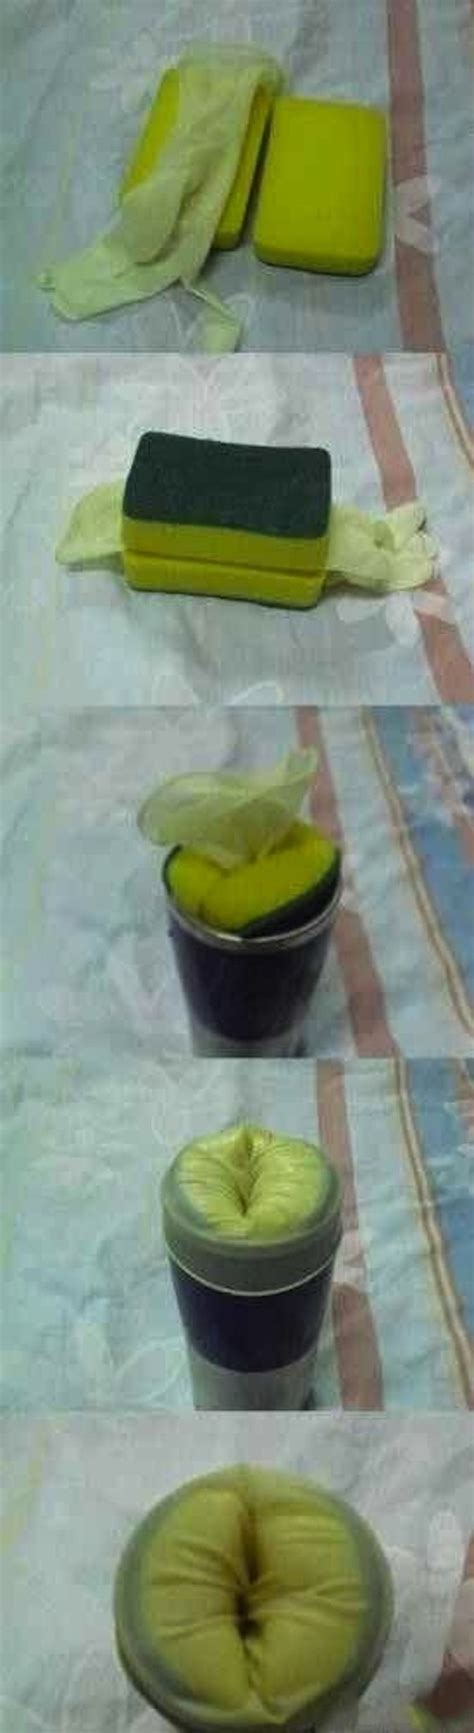 81 Best Images About Wtf Crafts Gone Wrong On